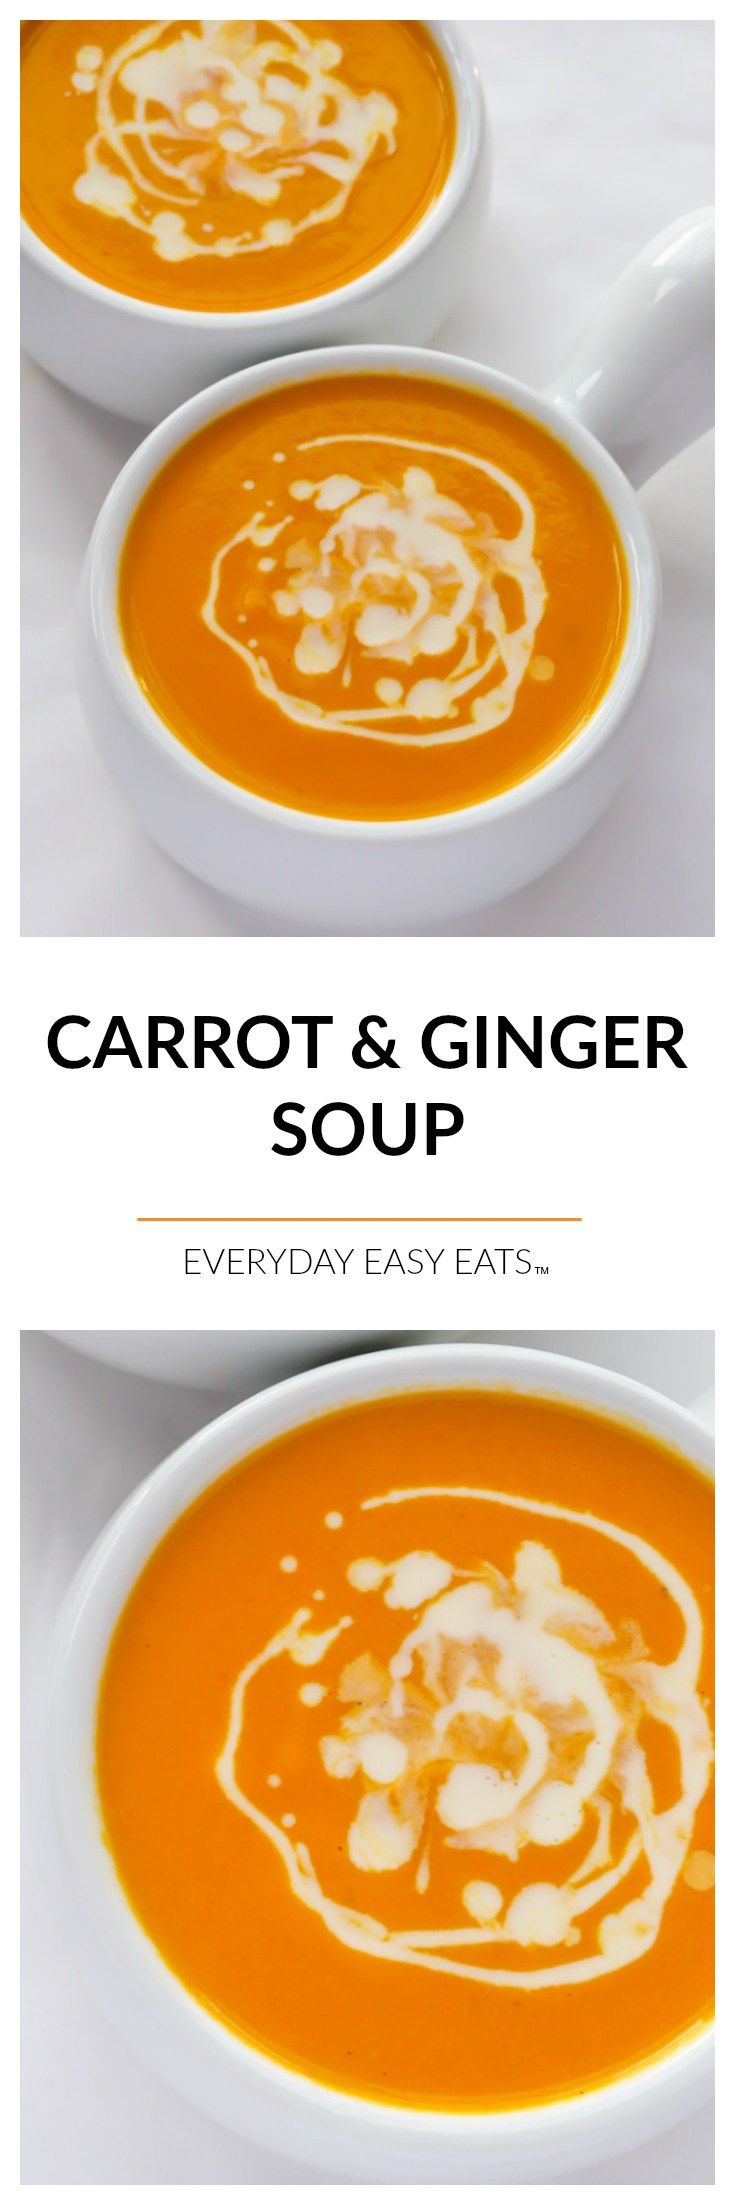 Carrot & Ginger Soup - A velvety, flavorful soup that is gluten-free, dairy-free and vegan. | EverydayEasyEats.com